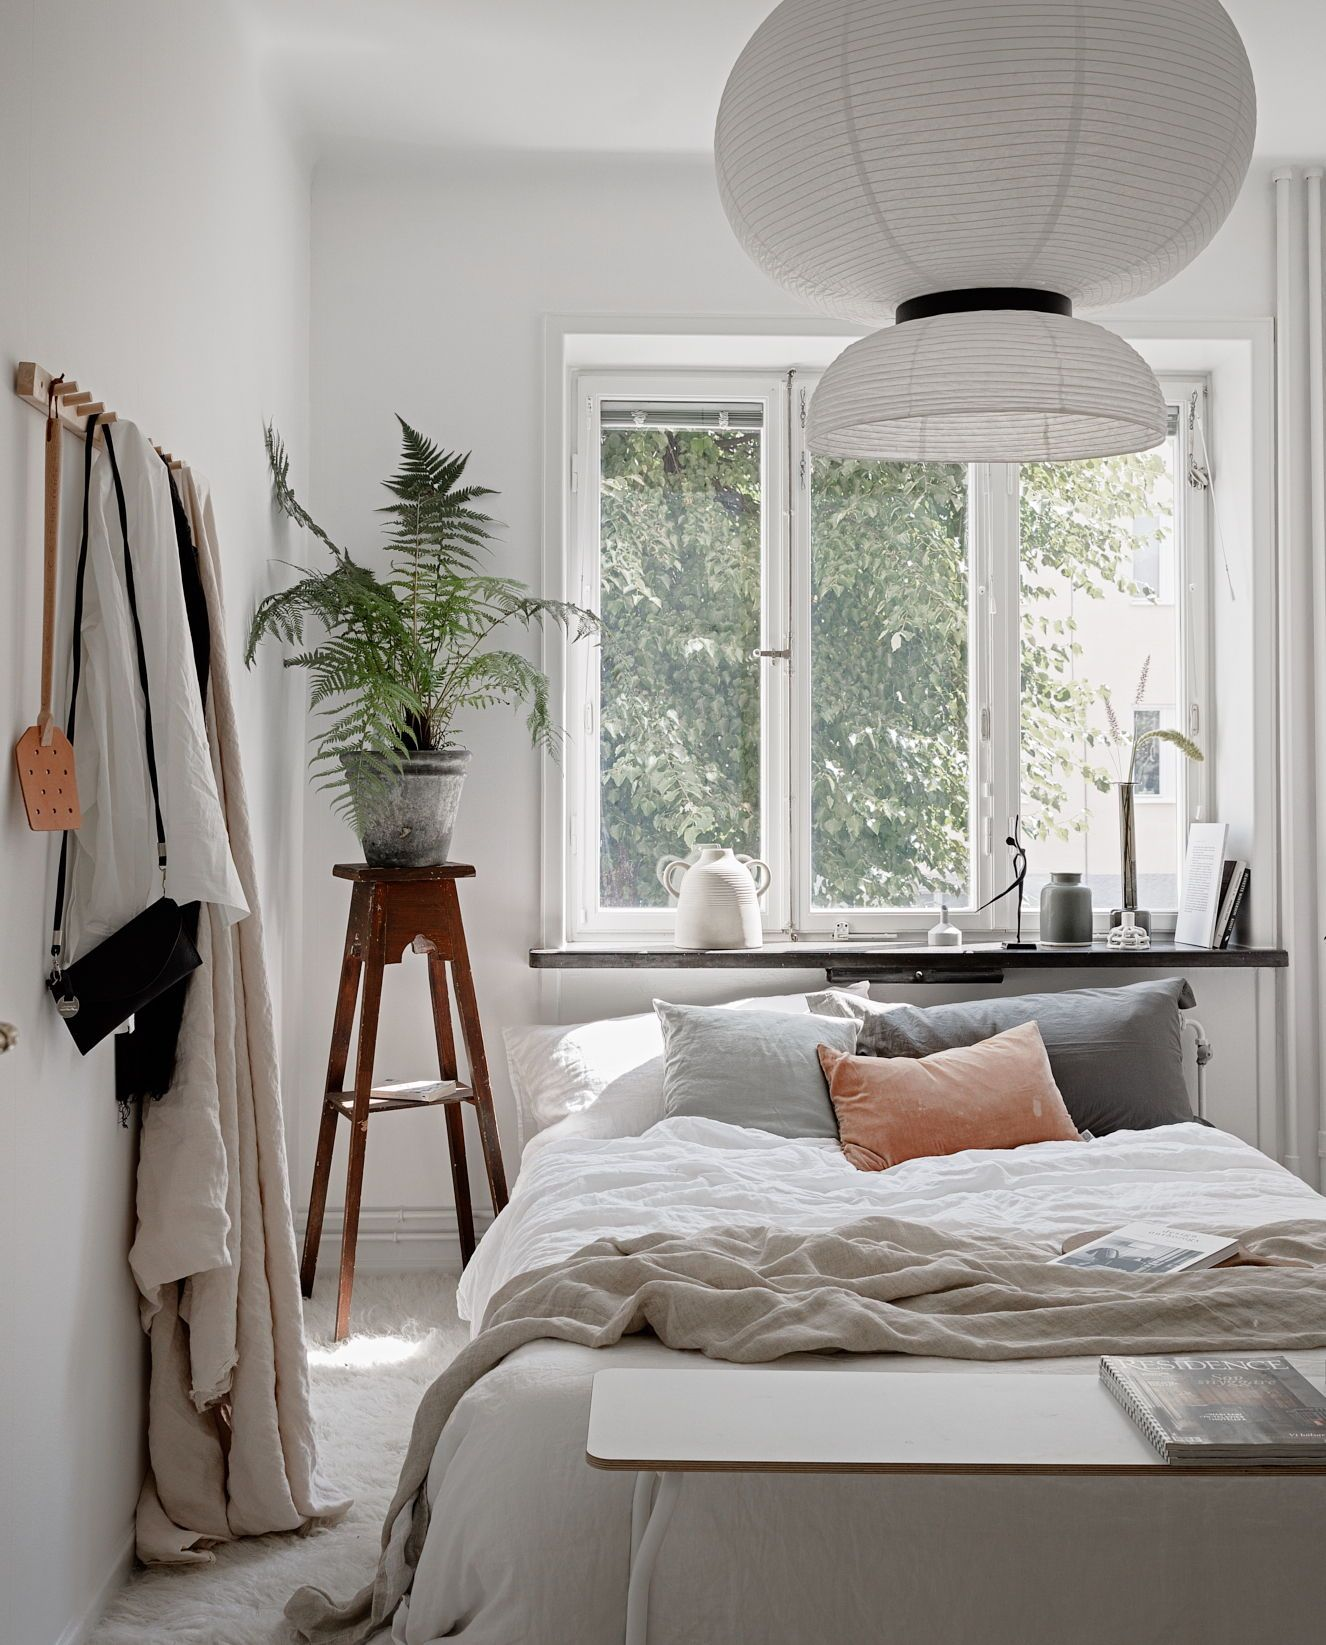 Light flooded home in muted colors - COCO LAPINE DESIGN